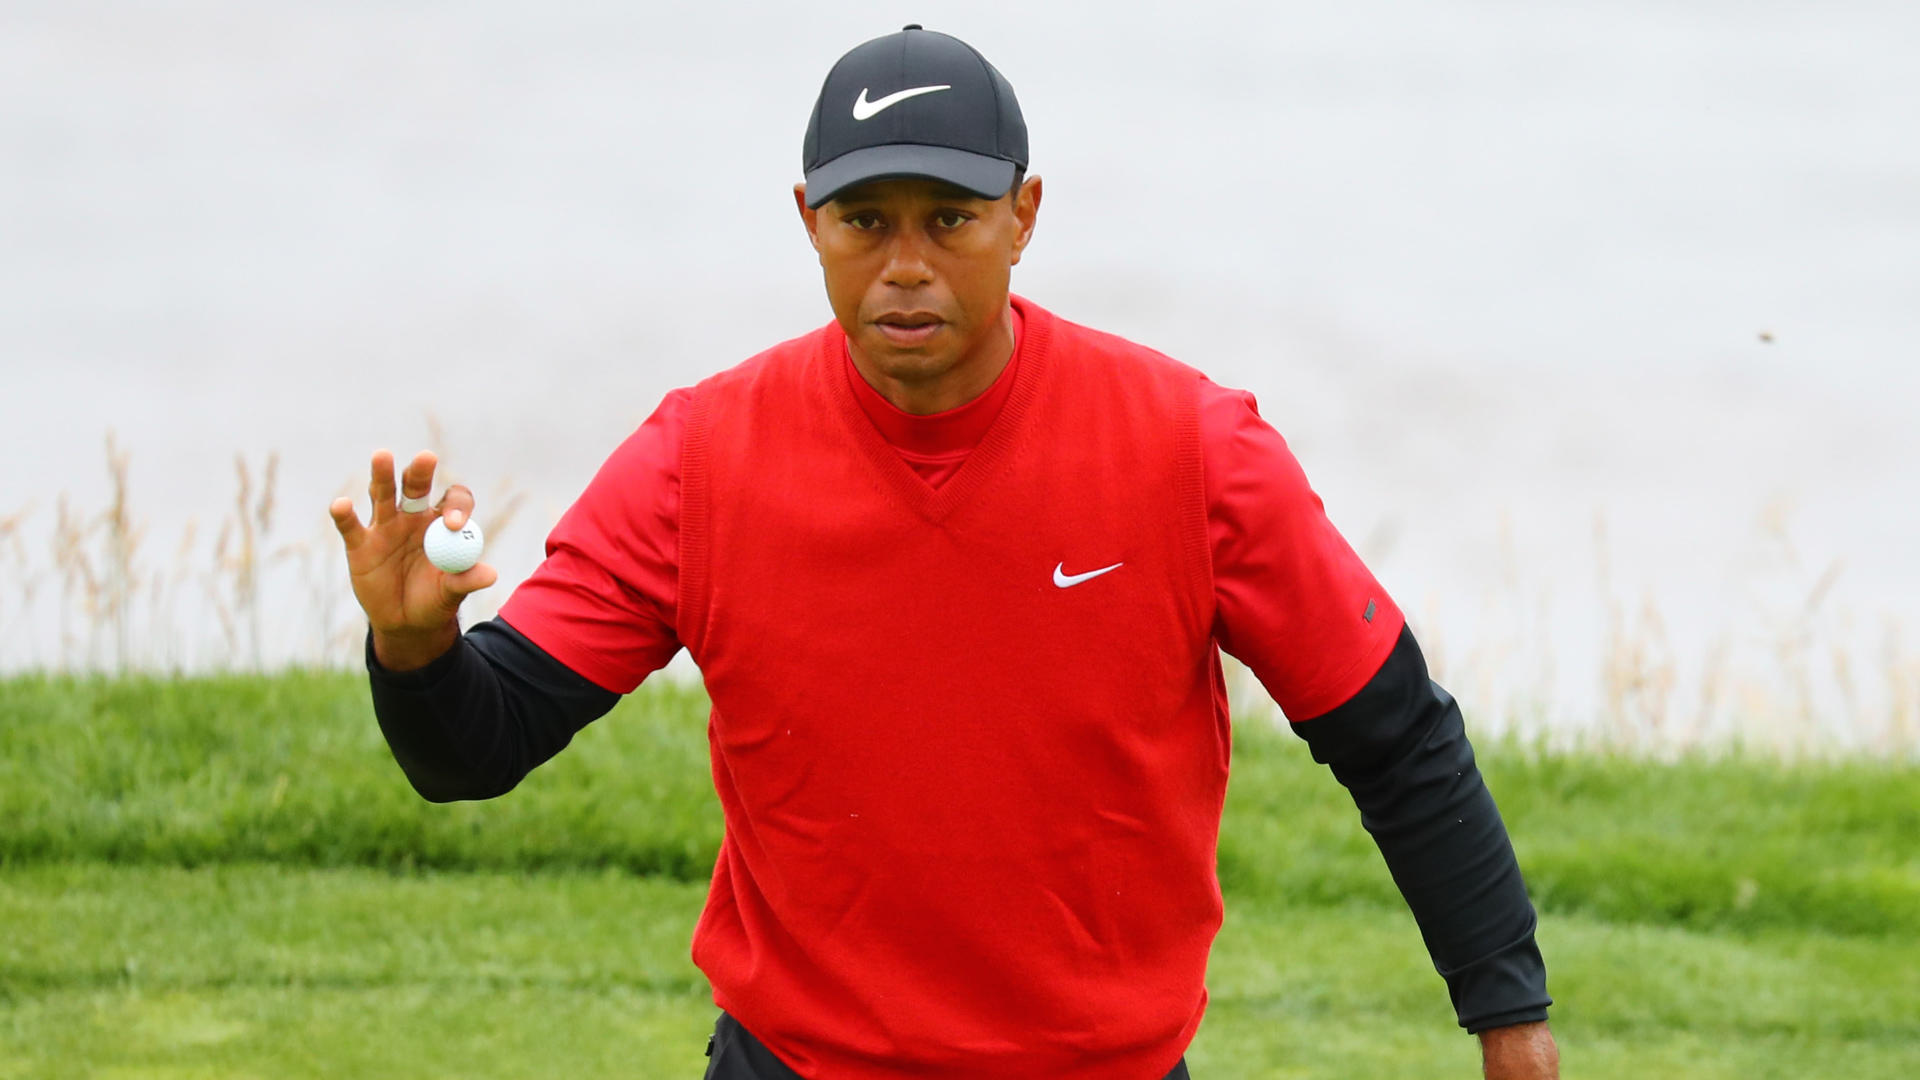 Tiger Woods score: Strong close in Round 4 puts sweet note on sour 2019 U.S. Open